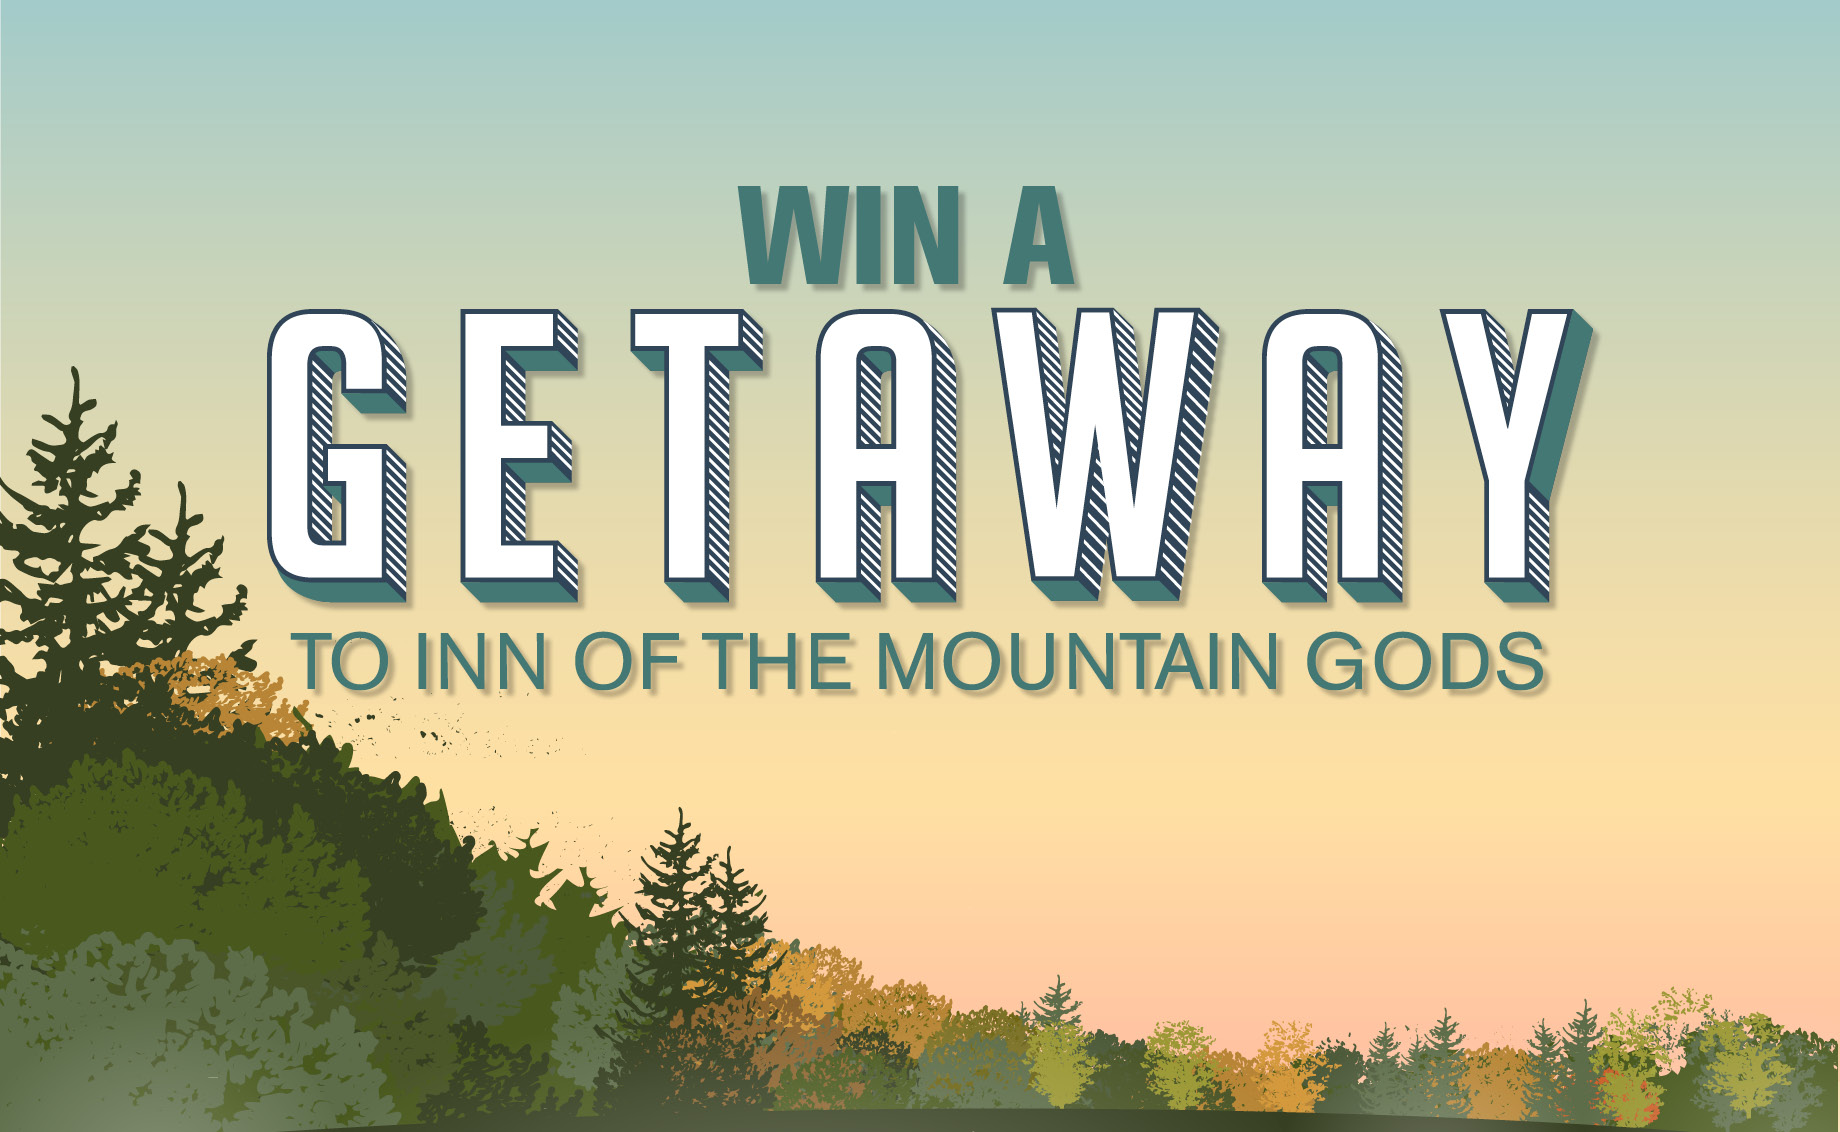 Win a Getaway to Inn of the Mountain Gods